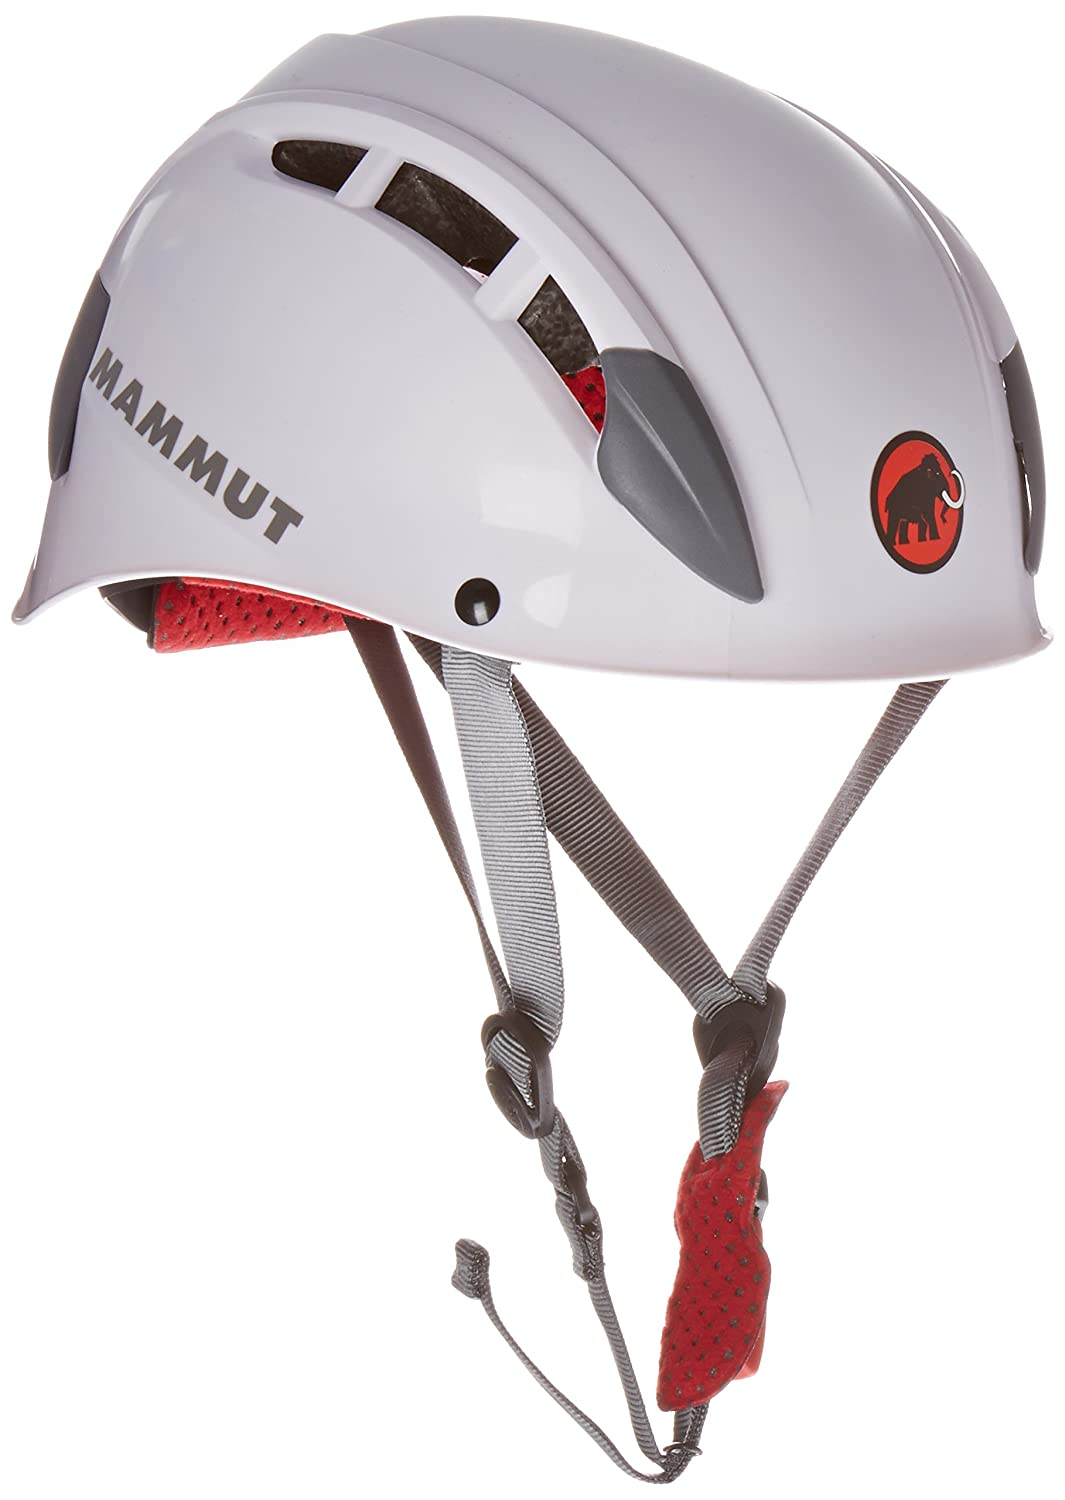 Mammut Skywalker Casco para escalada